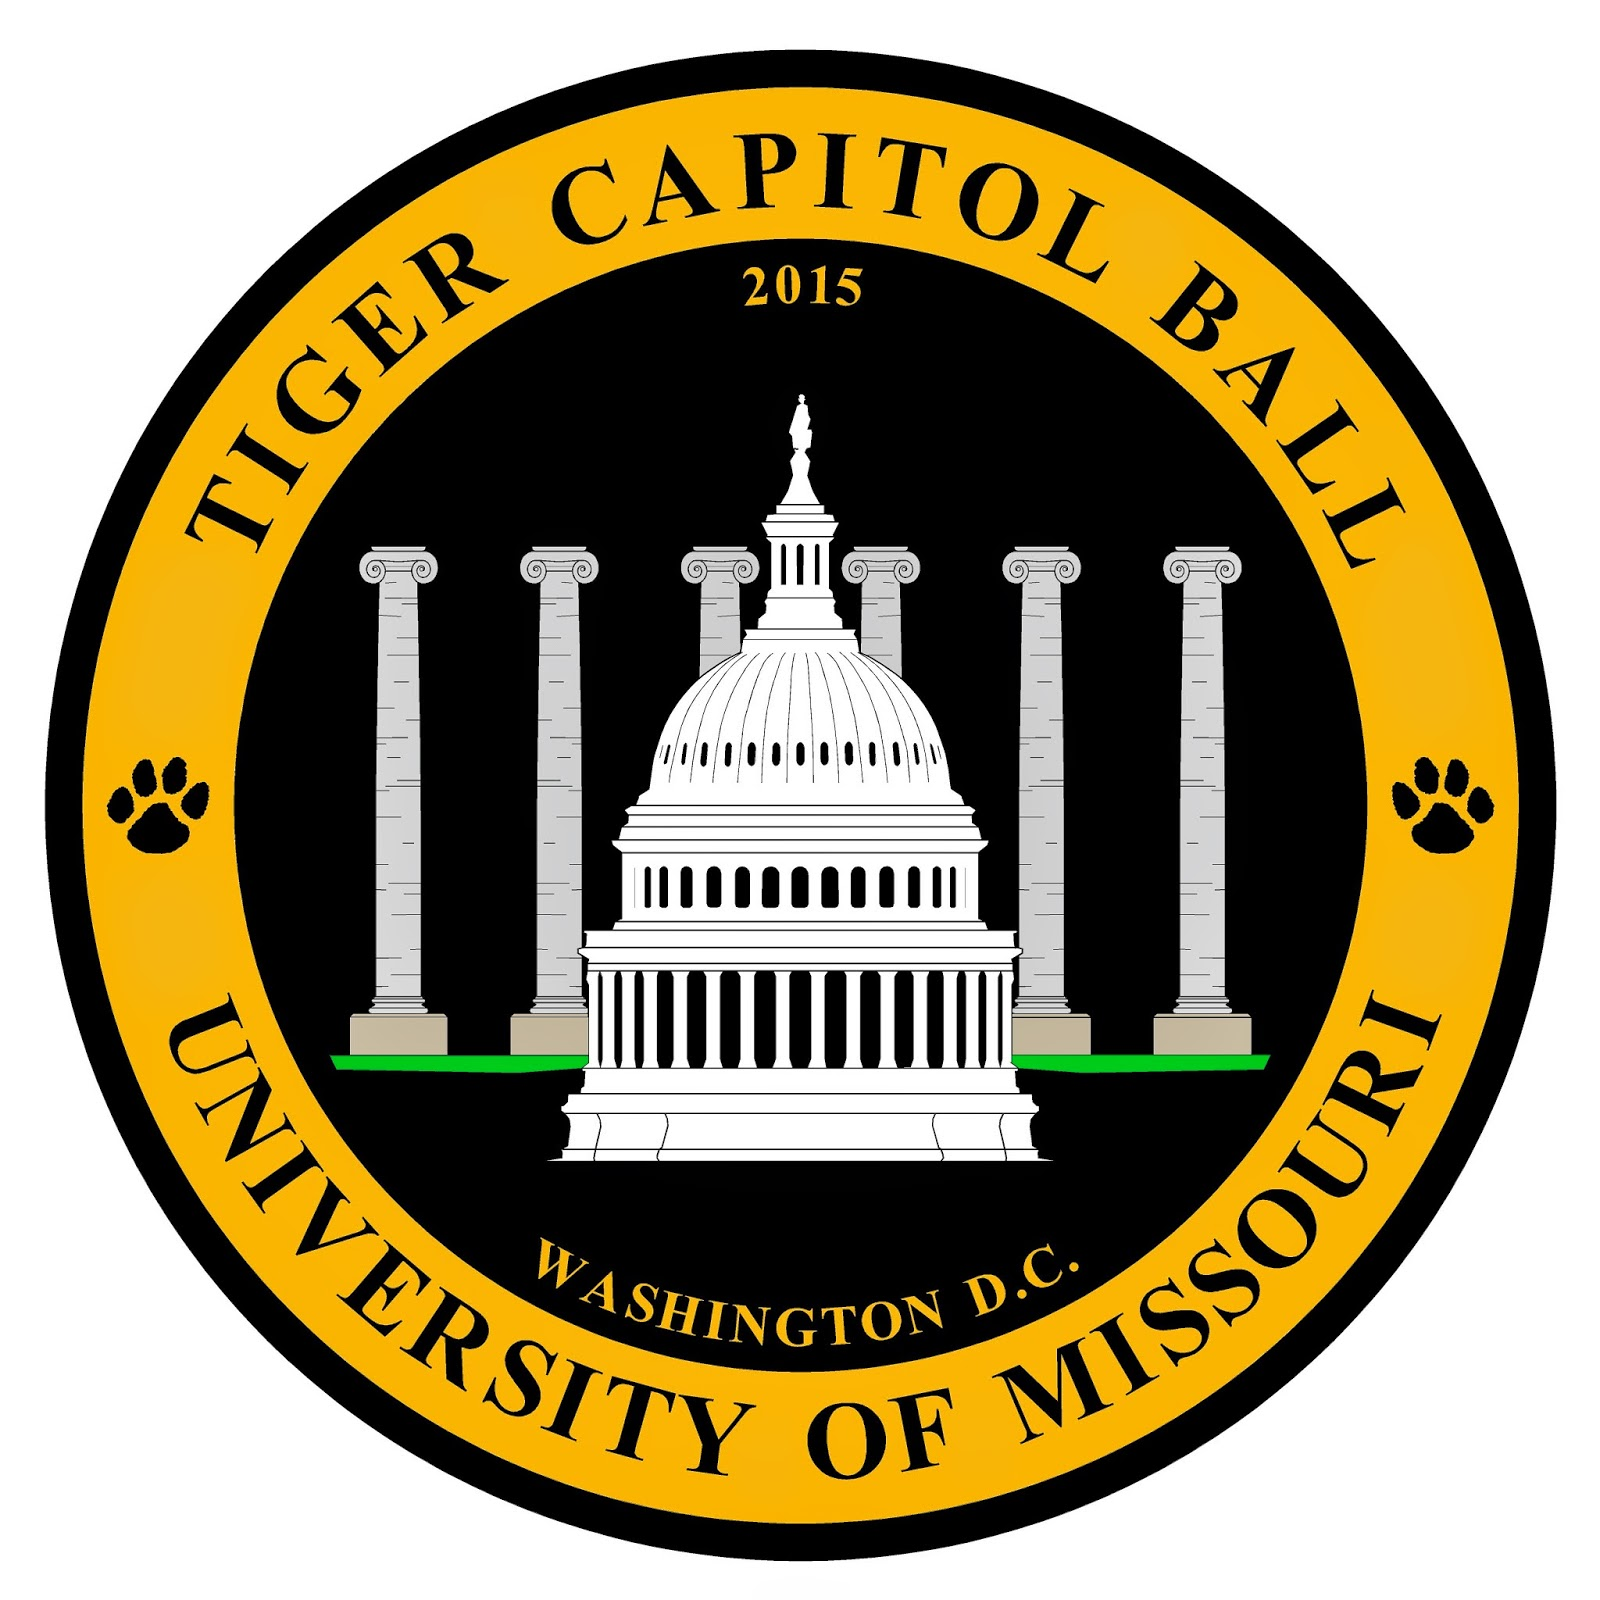 Tiger Capitol Ball